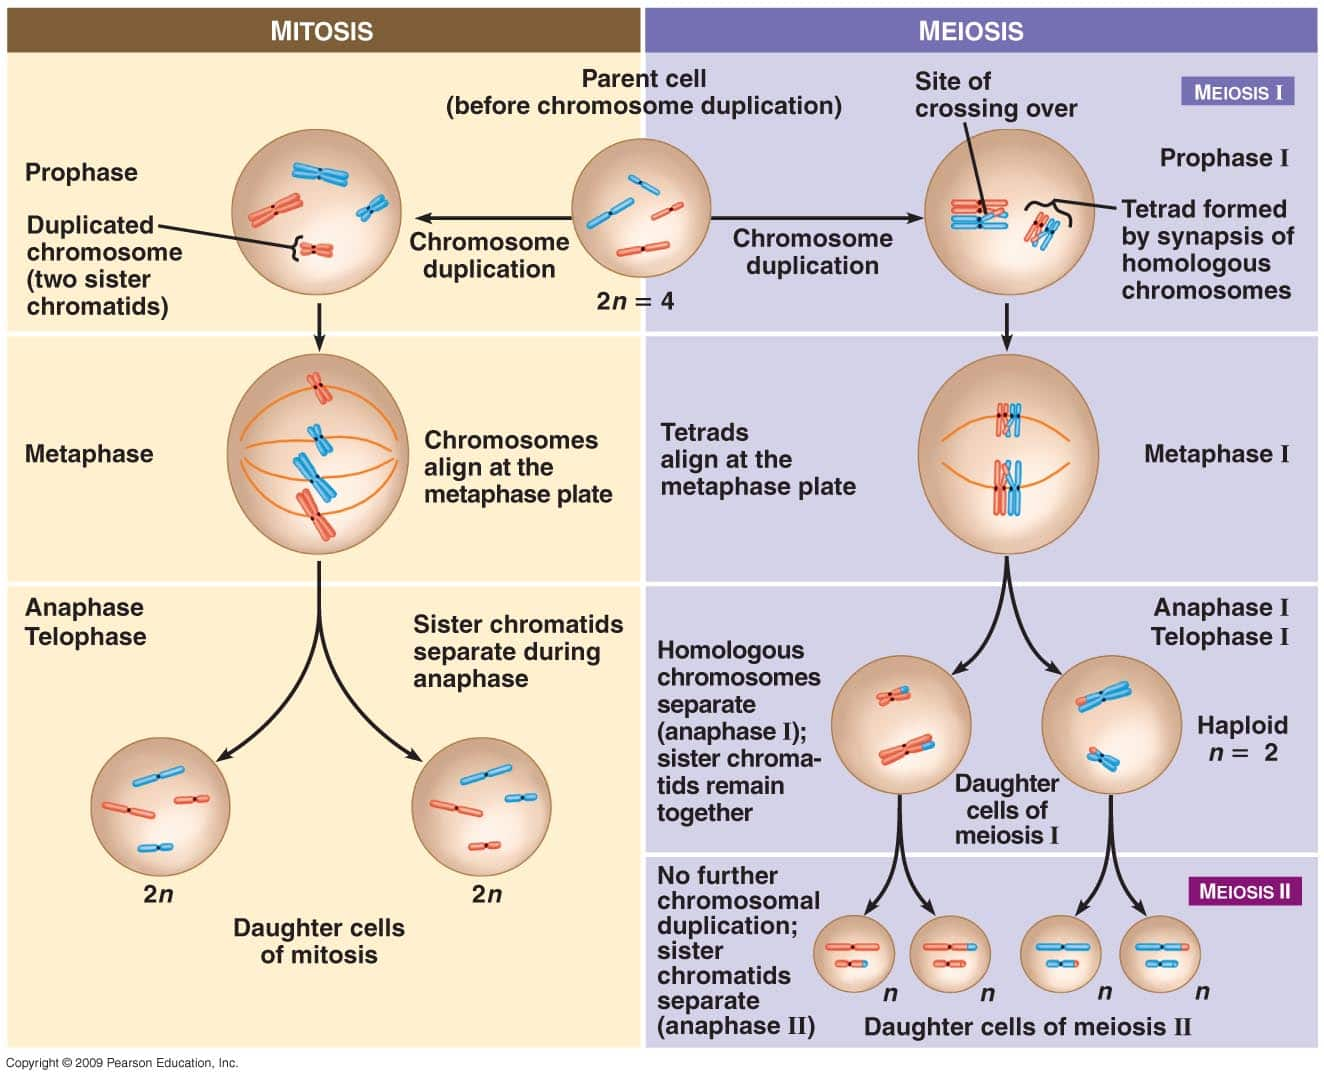 https://schoolworkhelper.net/meiosis-vs-mitosis-comparison/